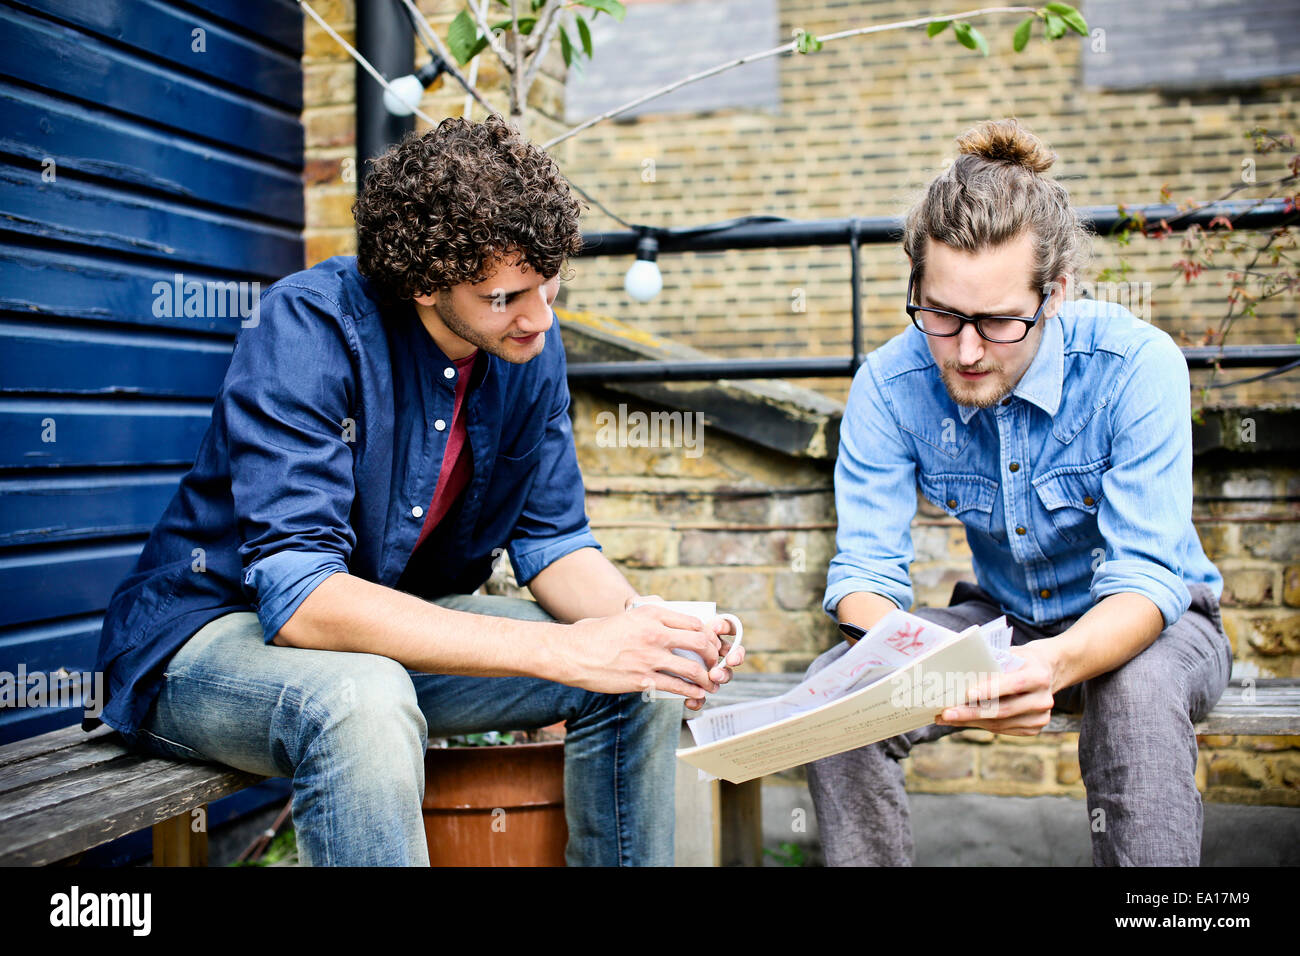 Men having discussion on bench - Stock Image